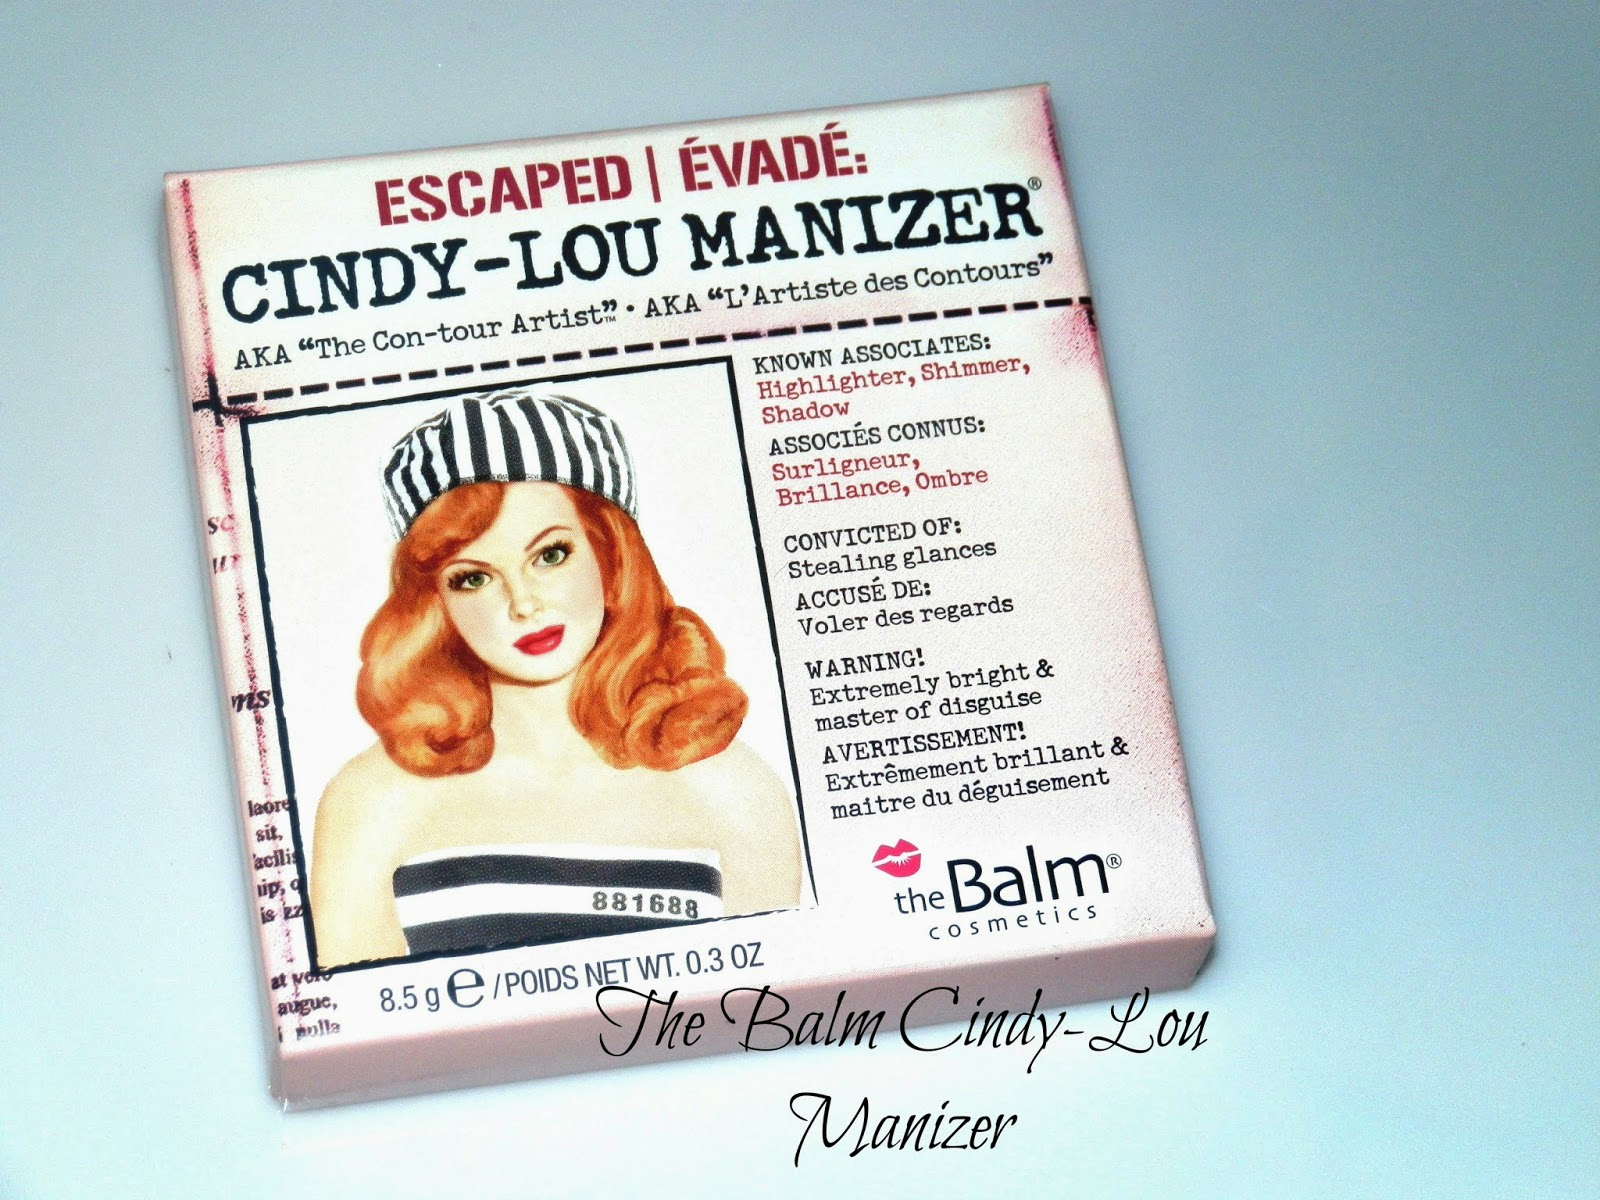 The Balm Cindy-Lou Manizer Swatches